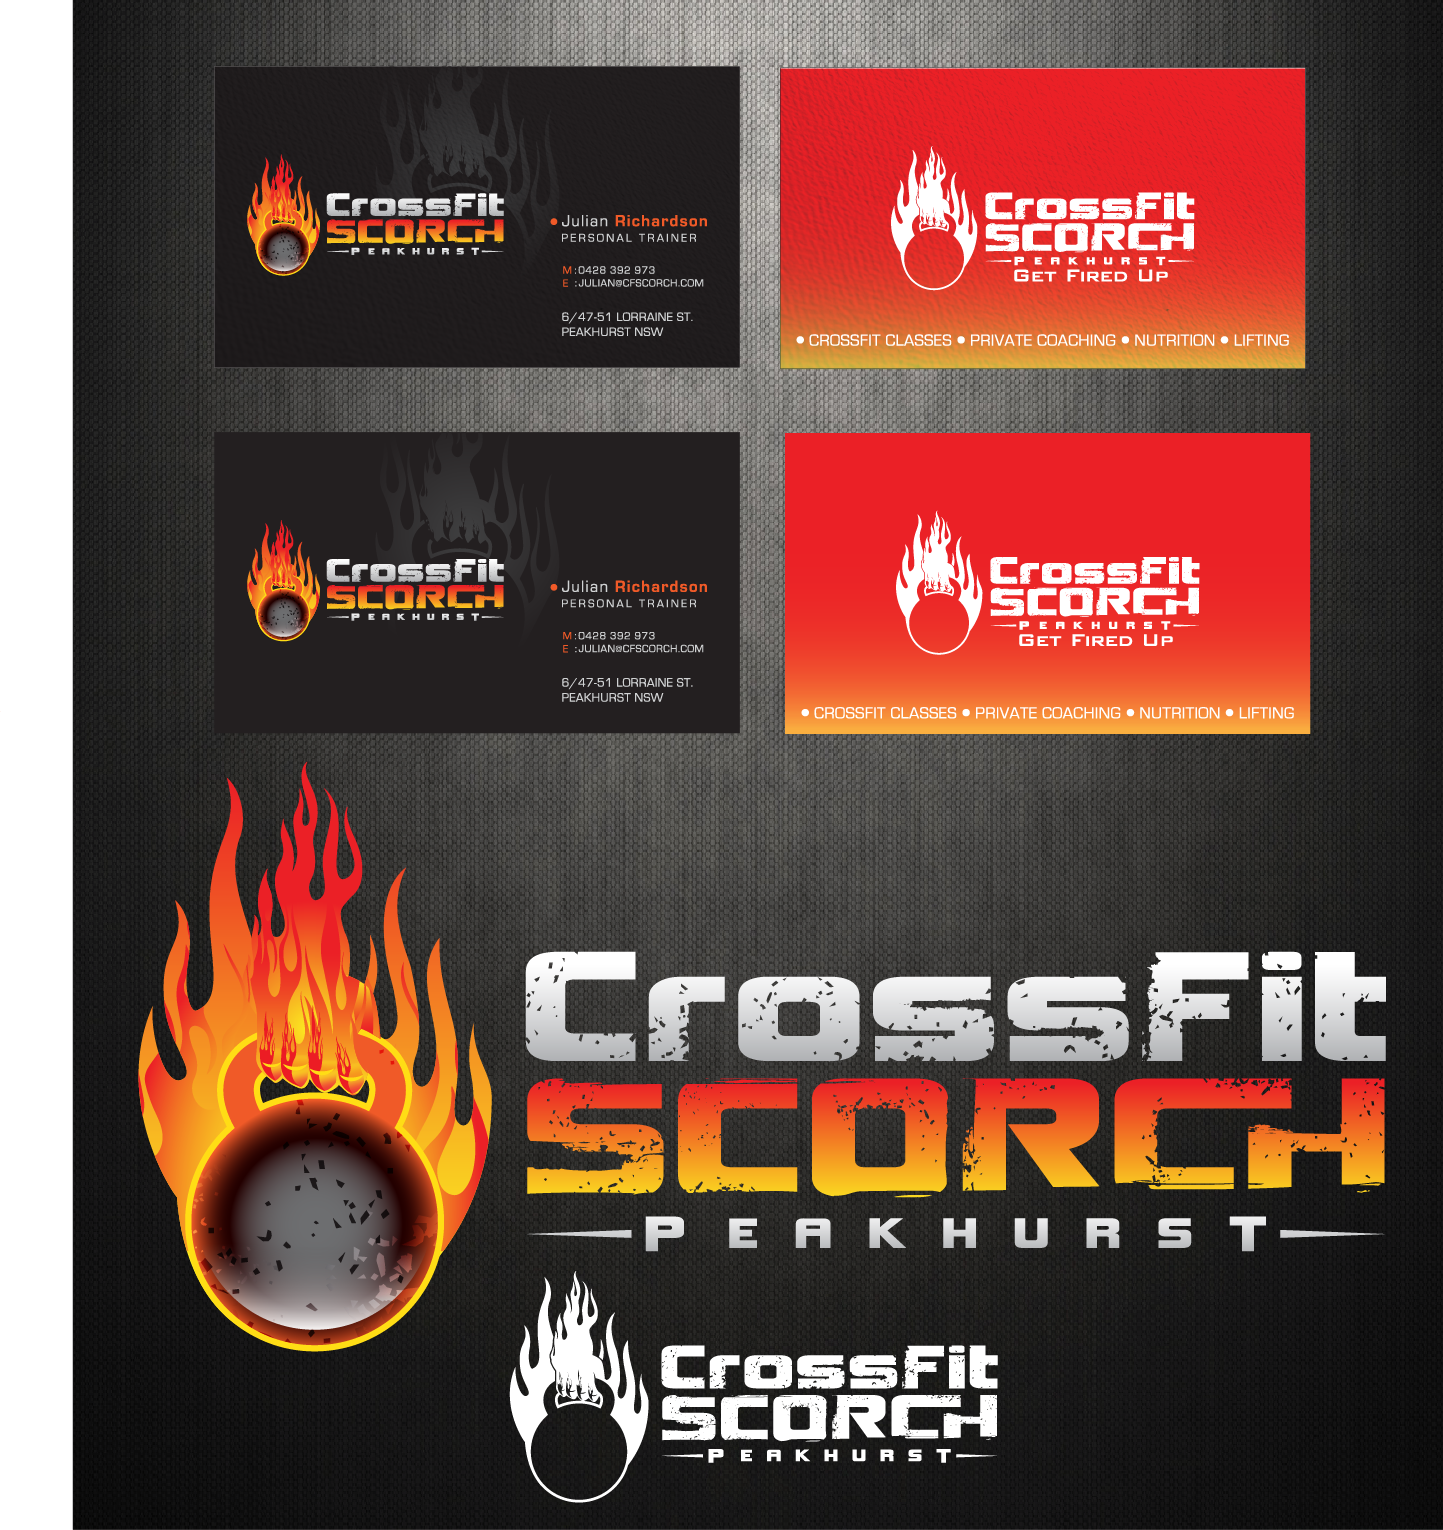 Create the next logo and business card for CrossFit Scorch